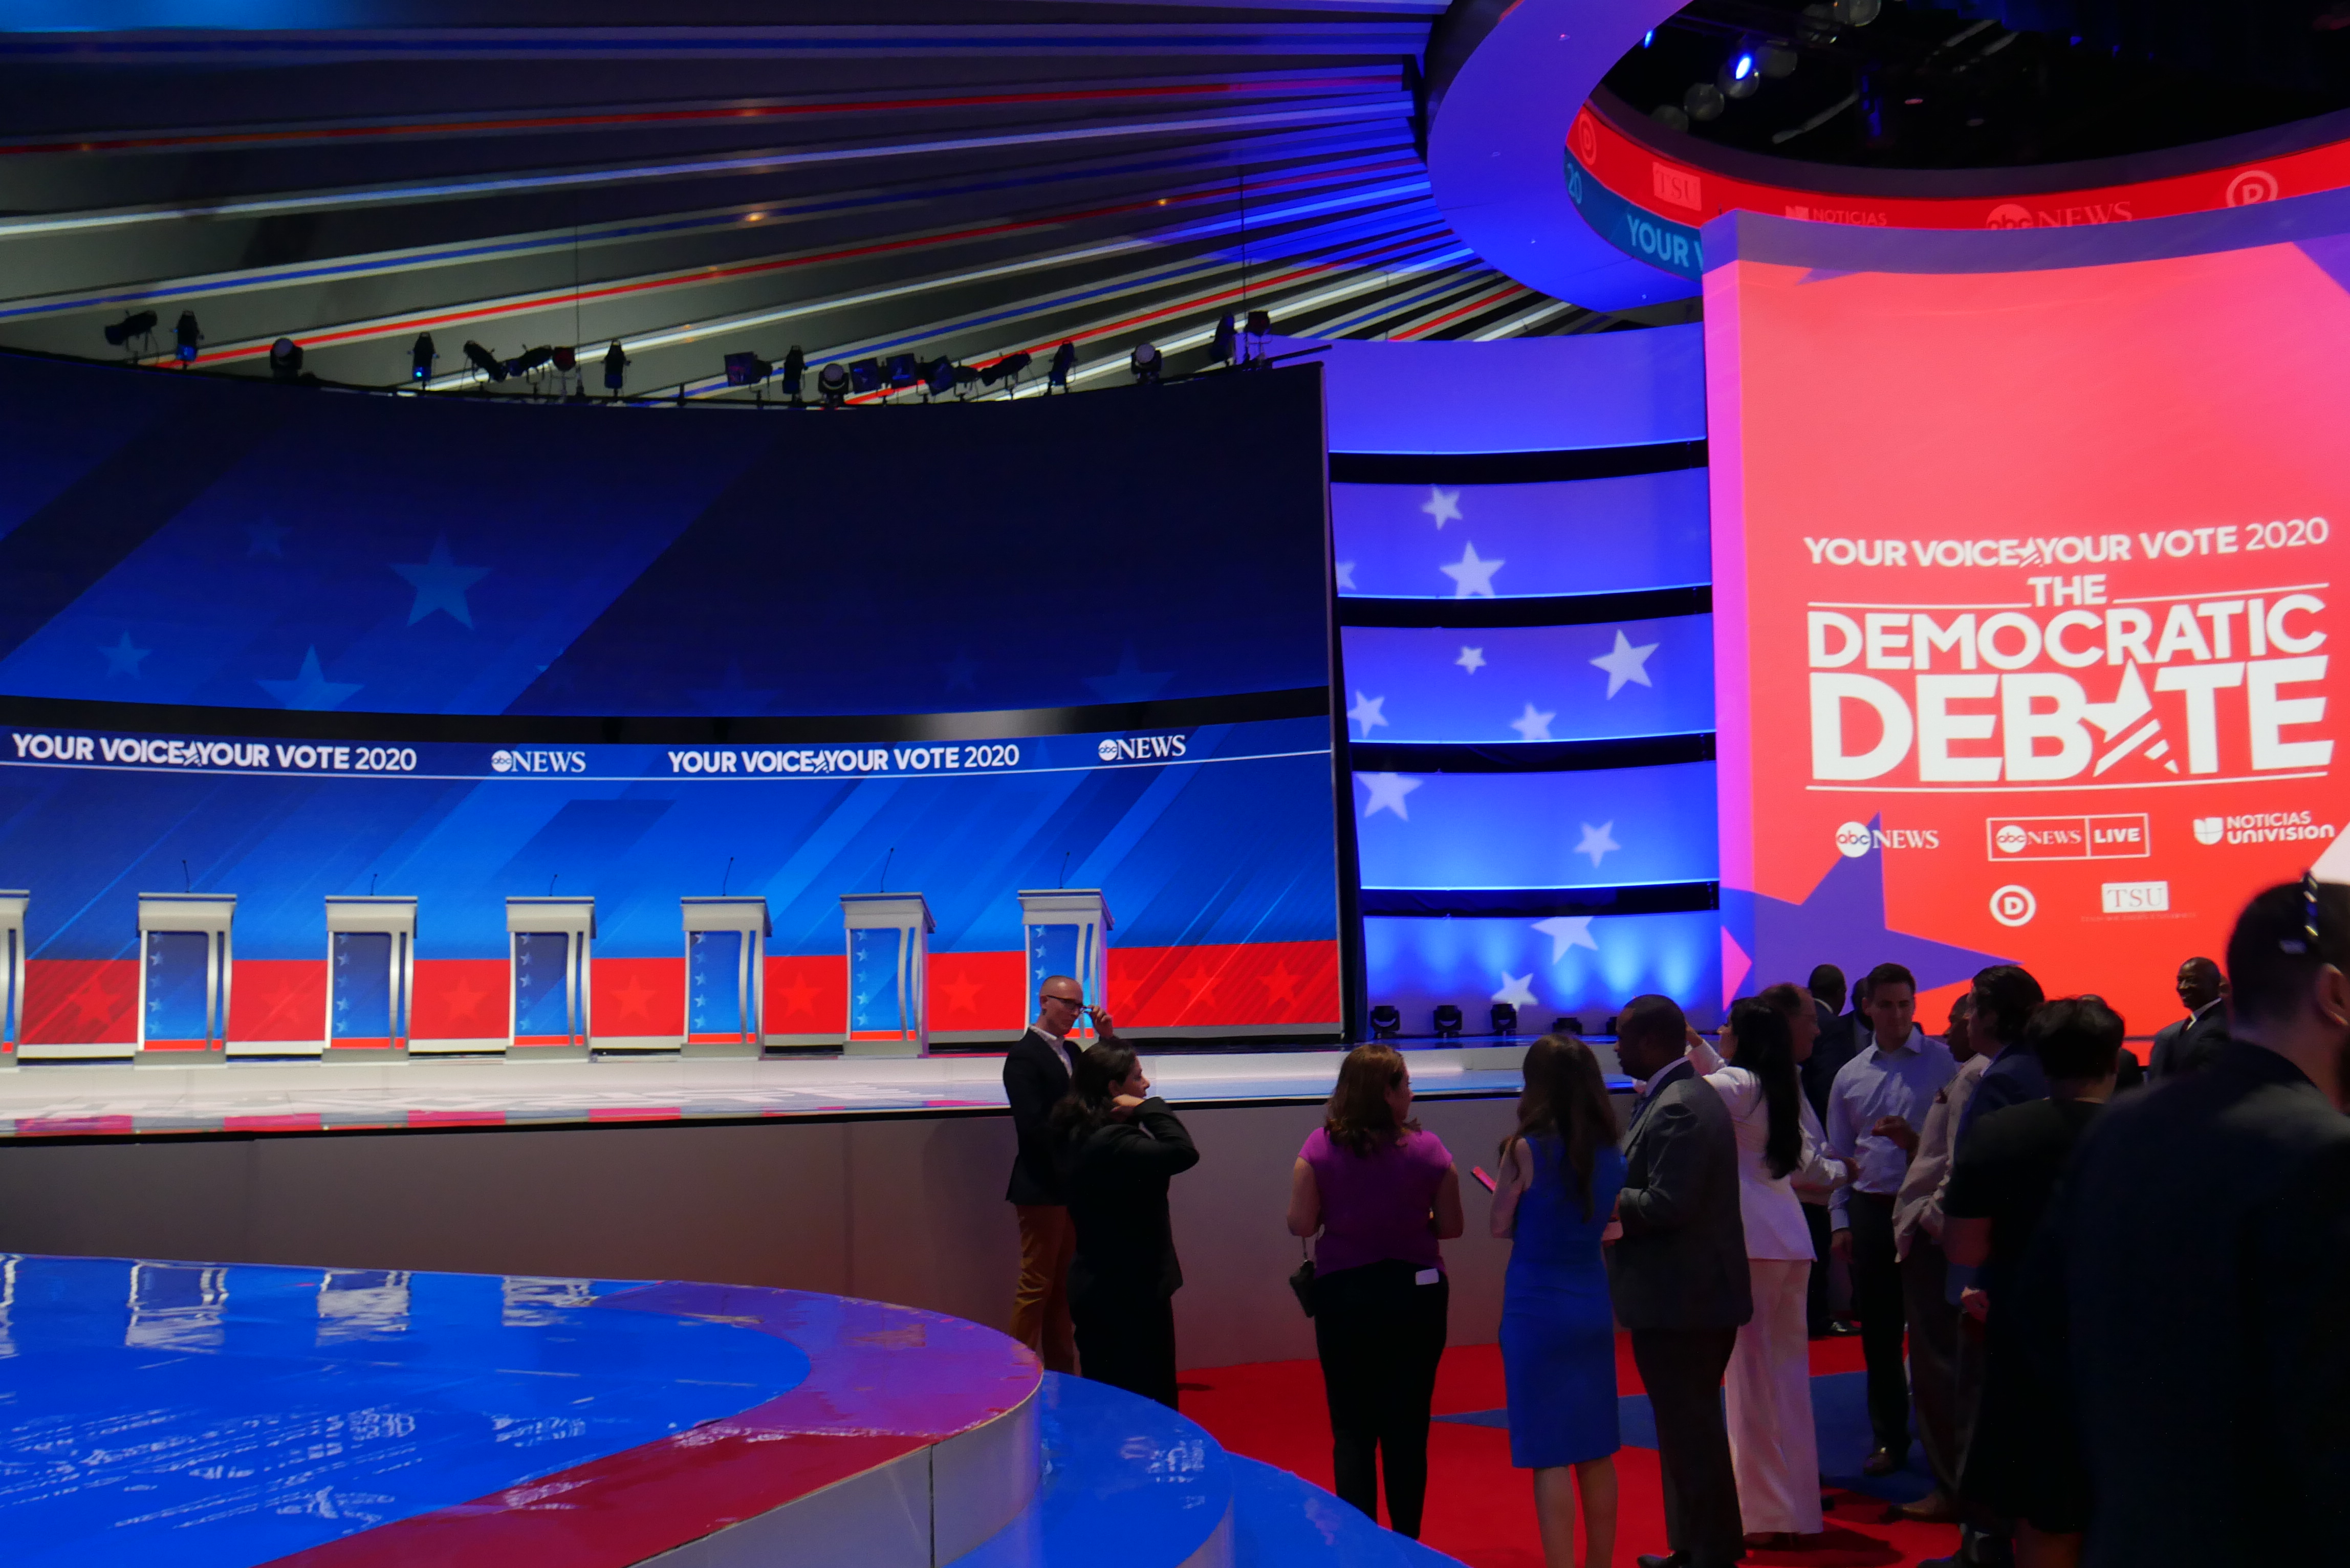 This is what I think about the Democratic Debate in Houston, Texas